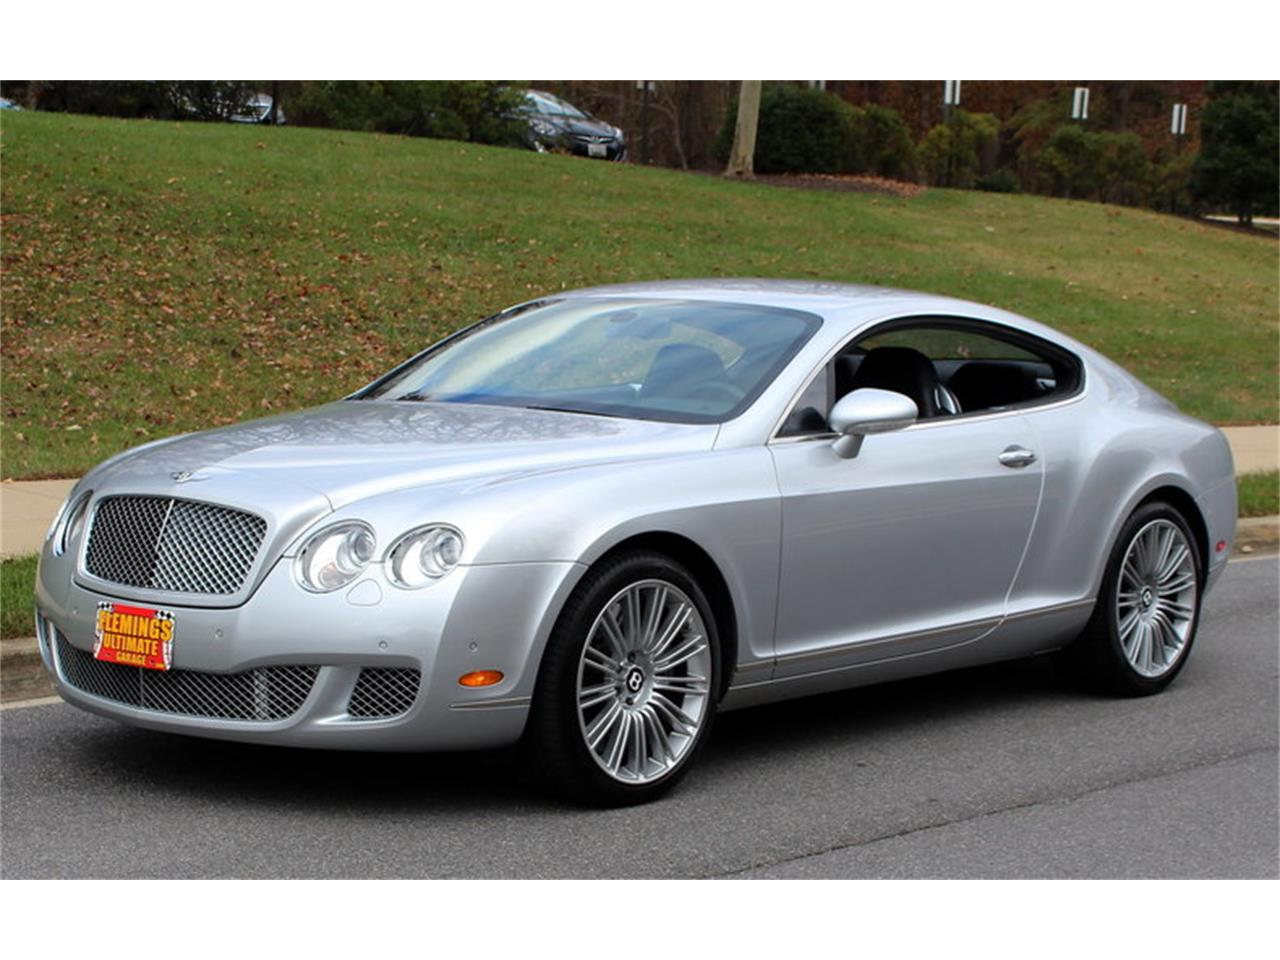 Large Picture of 2008 Continental located in Rockville Maryland - $69,990.00 - MDEM